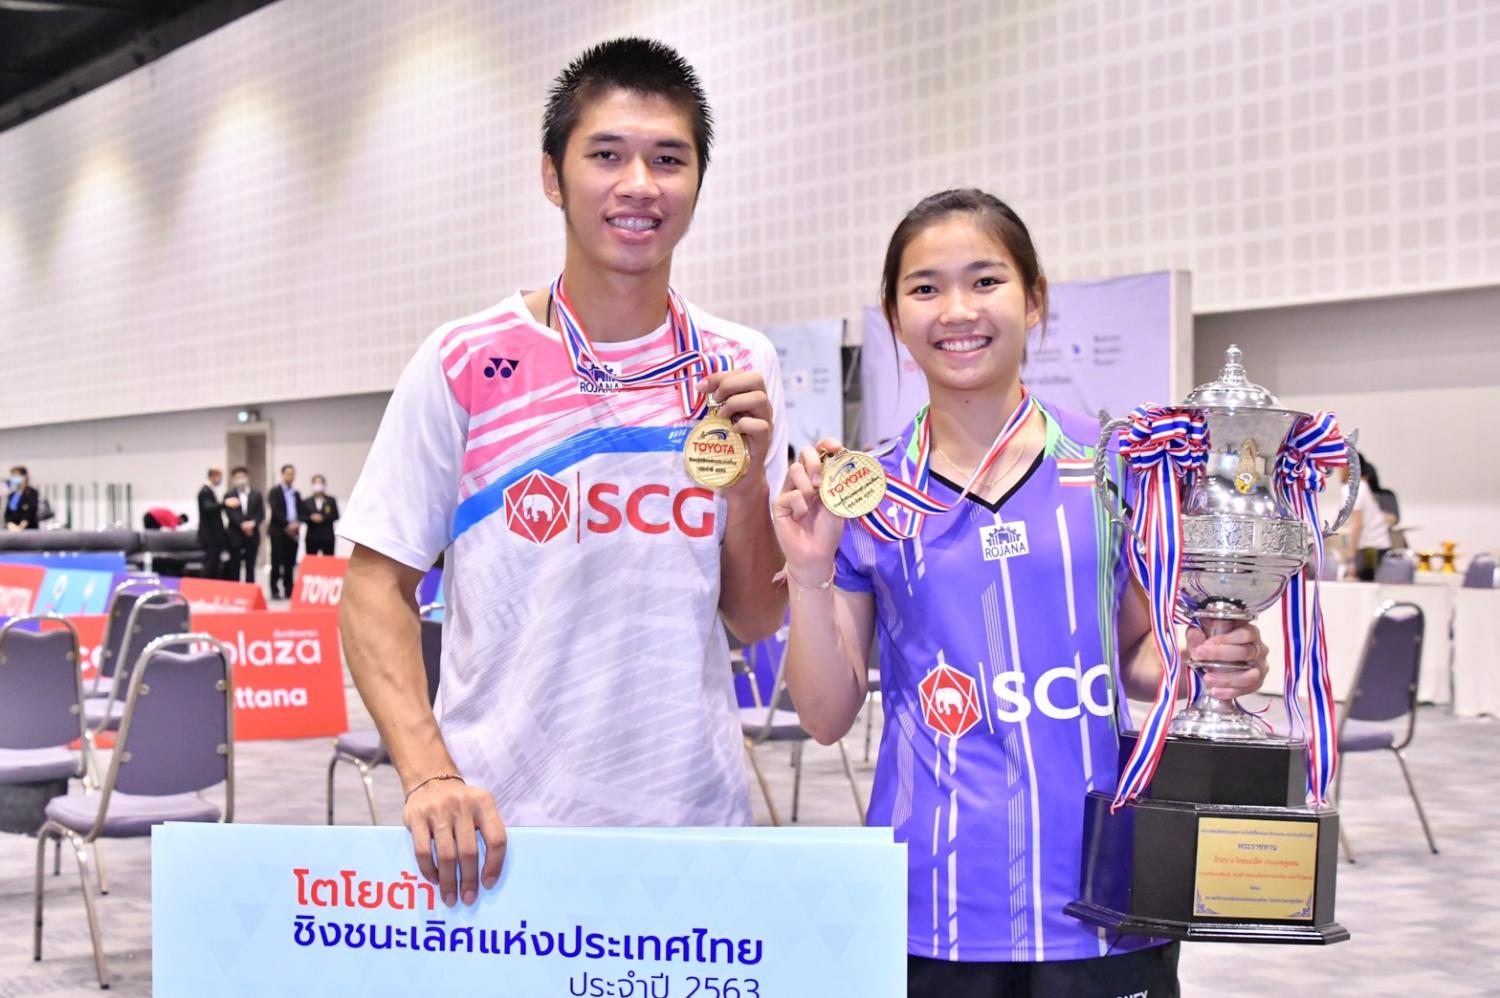 Mixed doubles champions Supak Jomkoh, left, and Supissara Paewsampran.